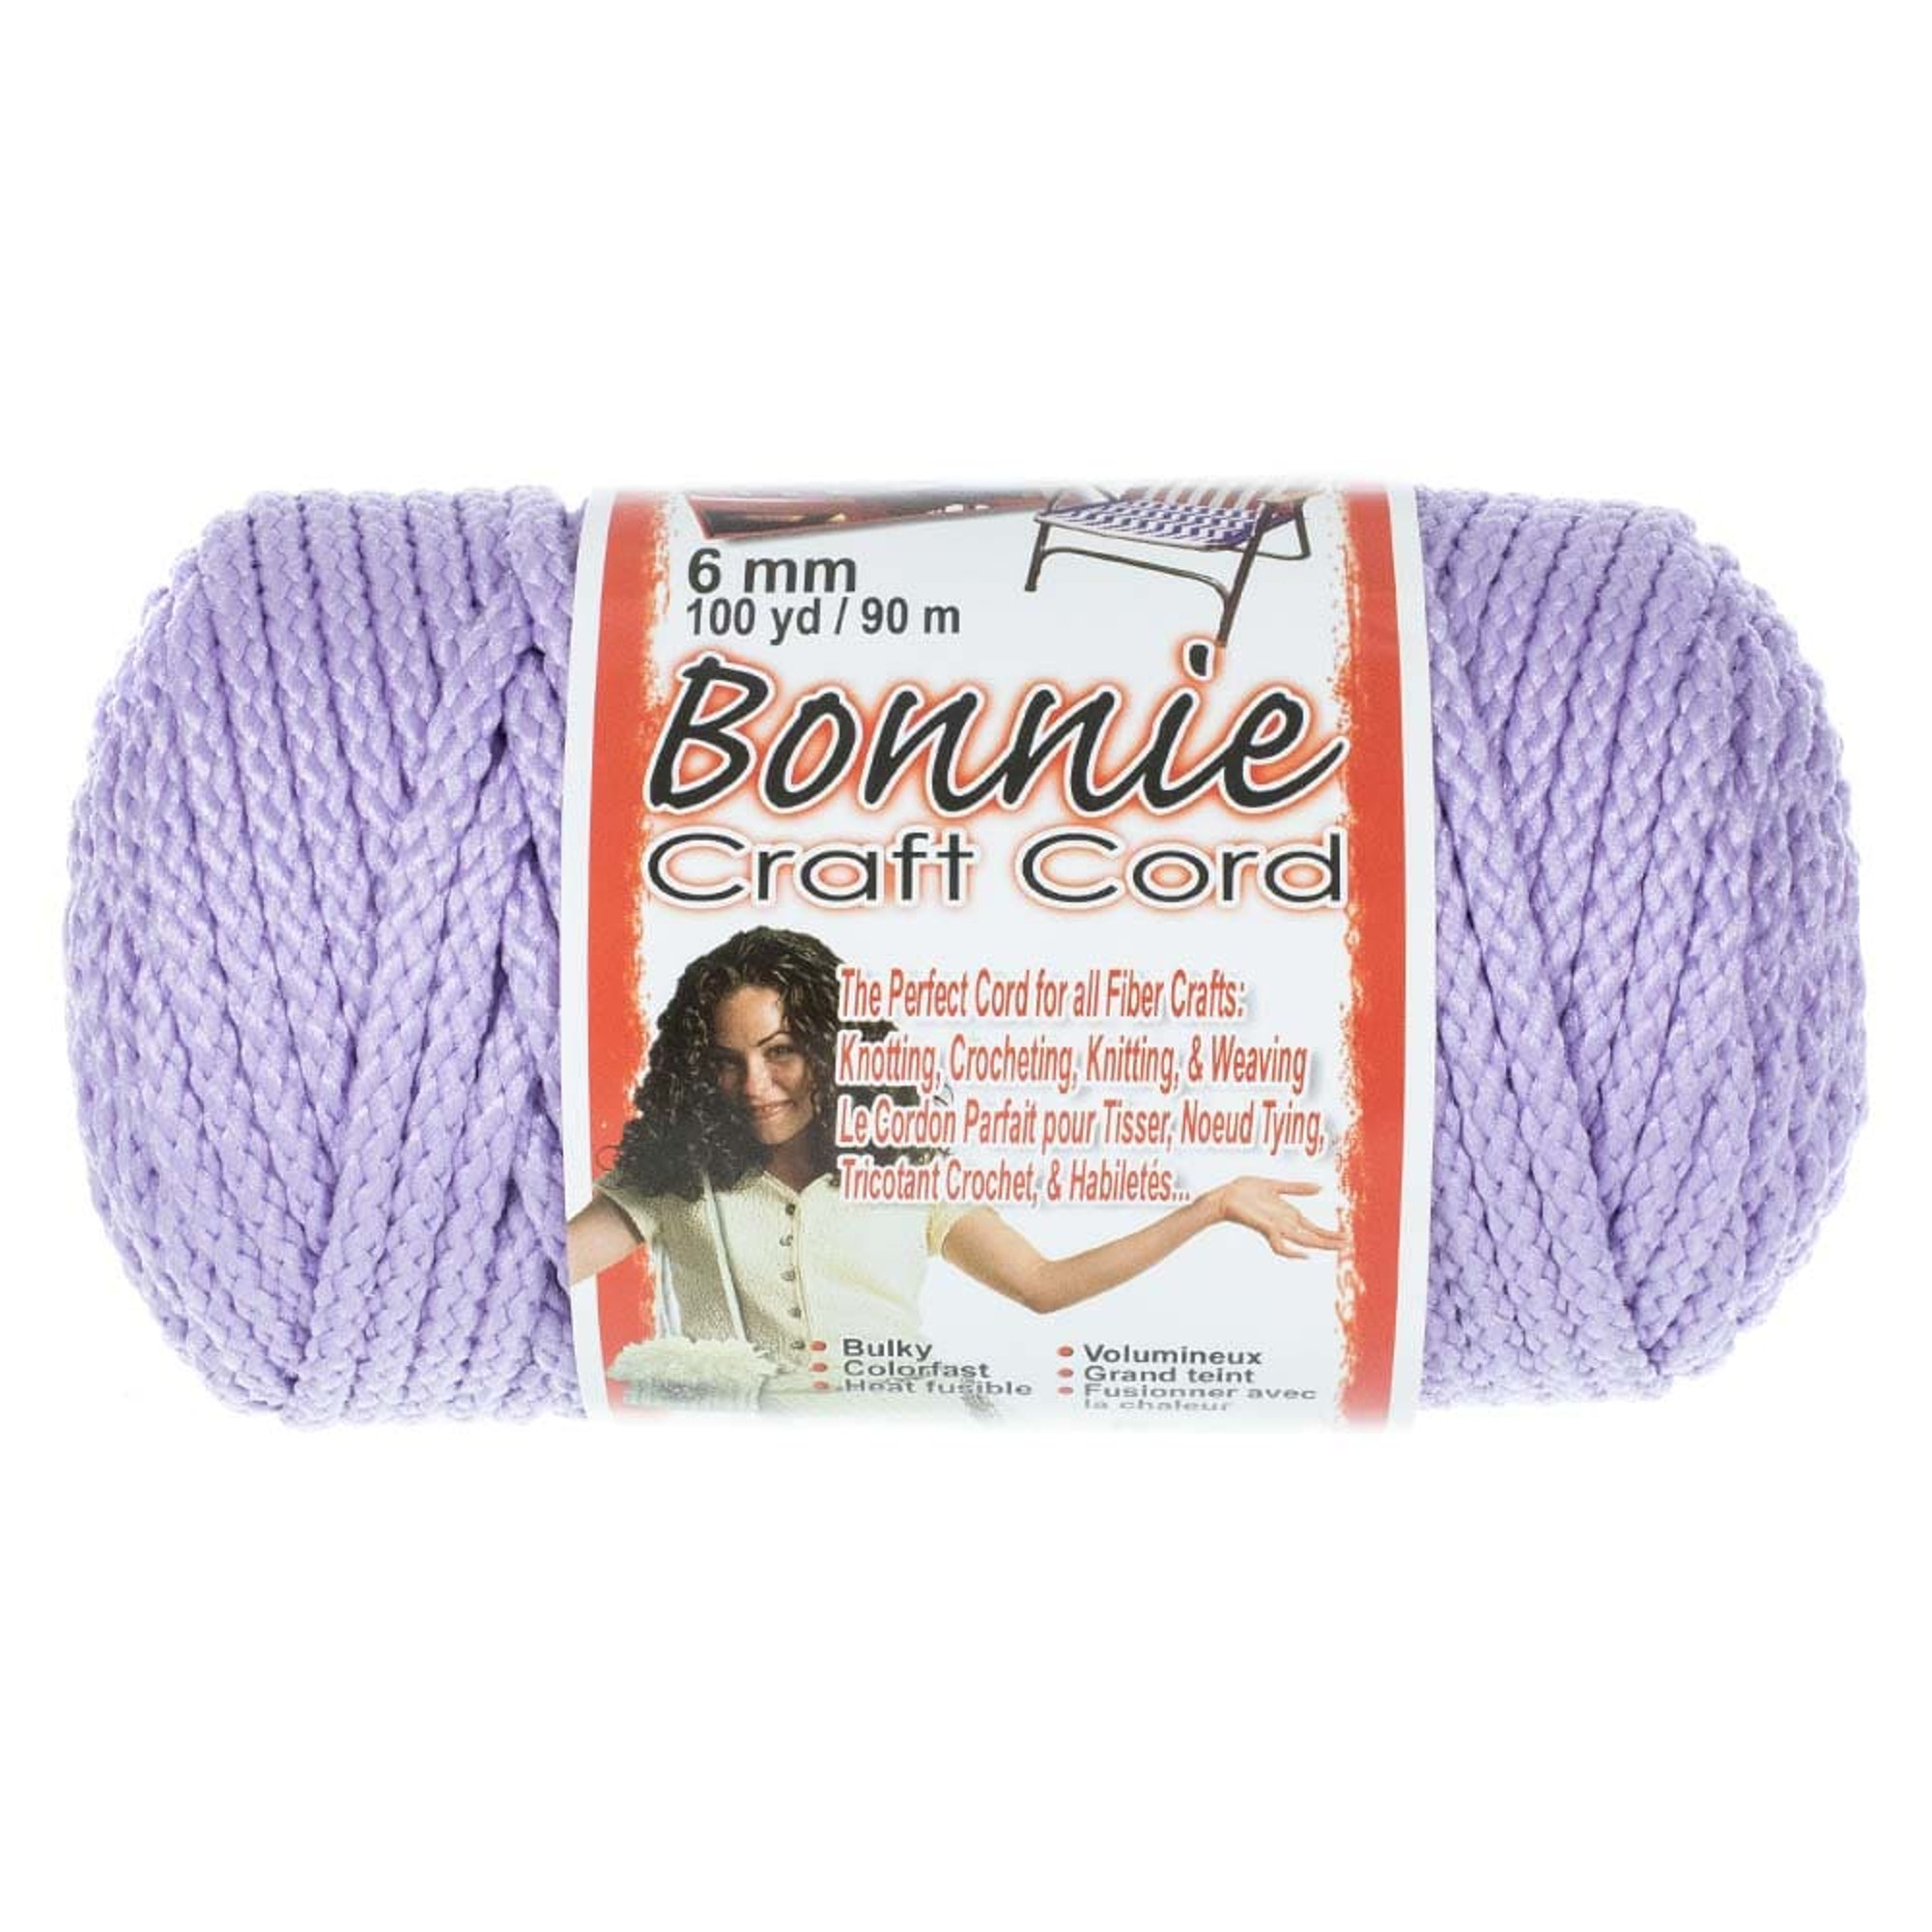 Bonnie 6mm Crafting Cord - Great for Macrame and Other Crafts - 100 yard Spools